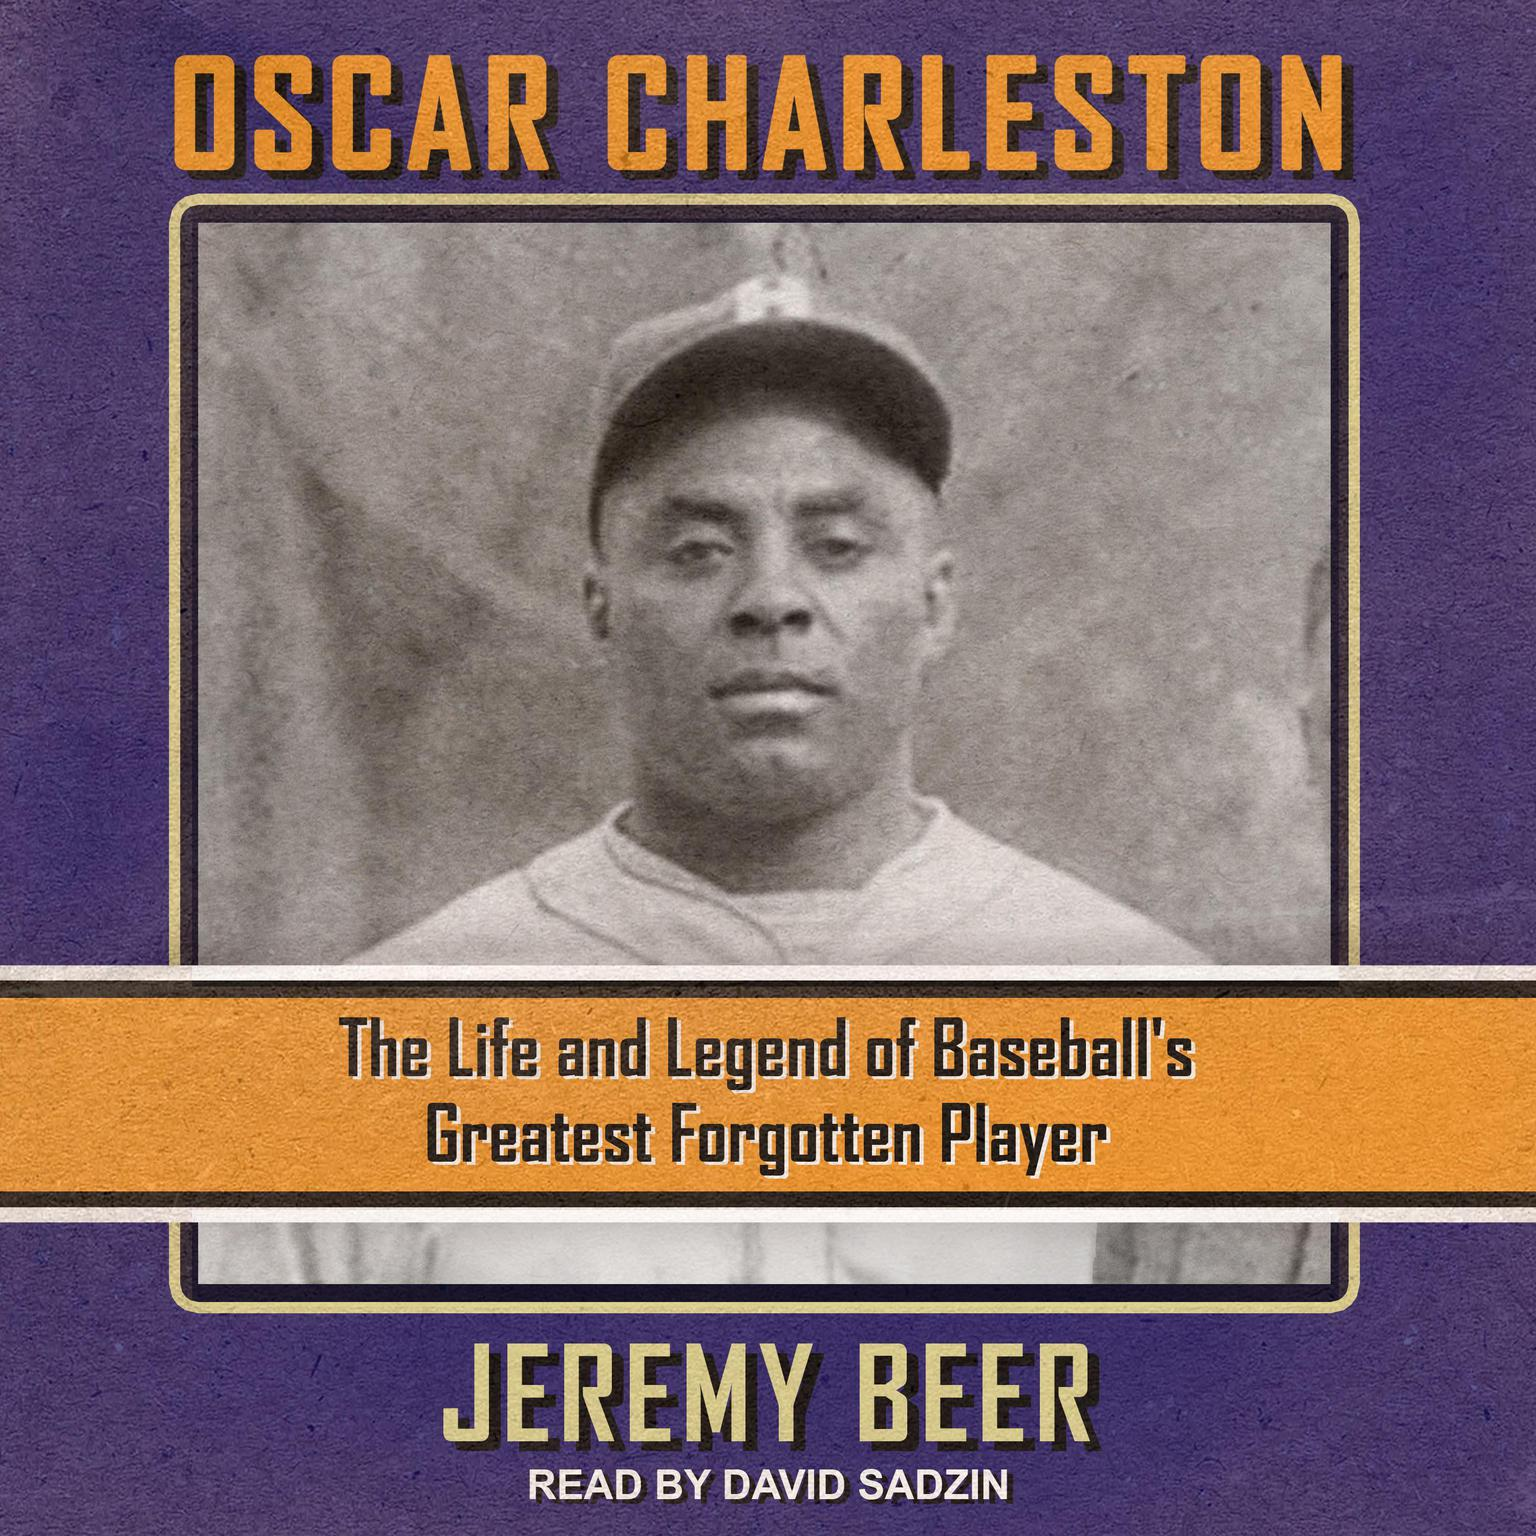 Oscar Charleston: The Life and Legend of Baseball's Greatest Forgotten Player Audiobook, by Jeremy Beer